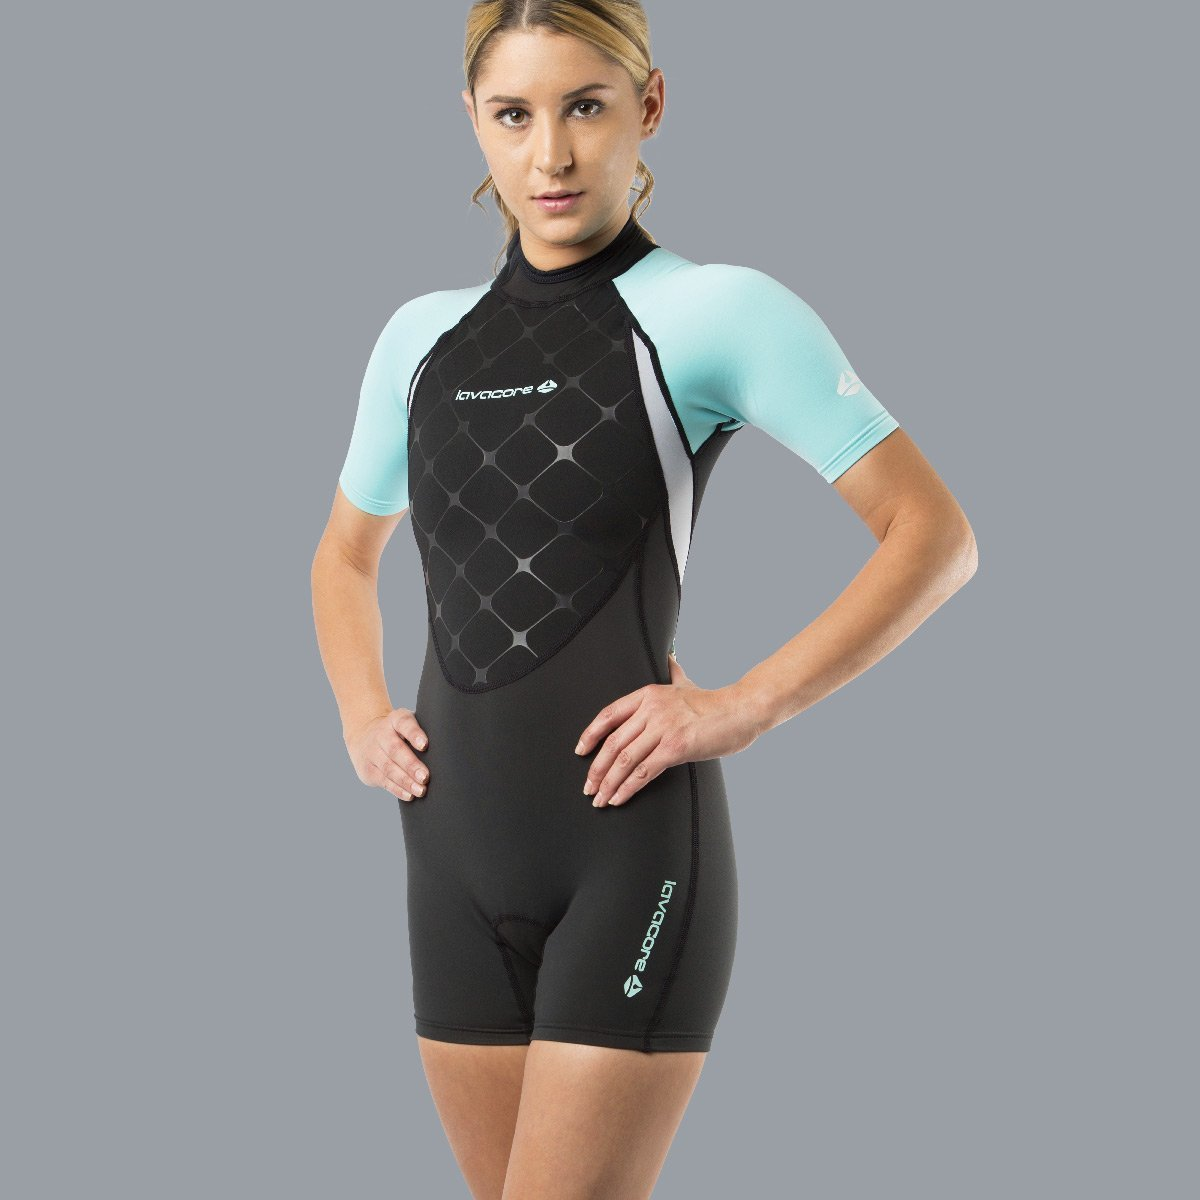 New Women's LavaCore LavaSkin Sporty Shorty Wetsuit - Green (Size 2X-Small) for Scuba Diving, Surfing, Kayaking, Rafting, Paddling & Many Other WaterSports